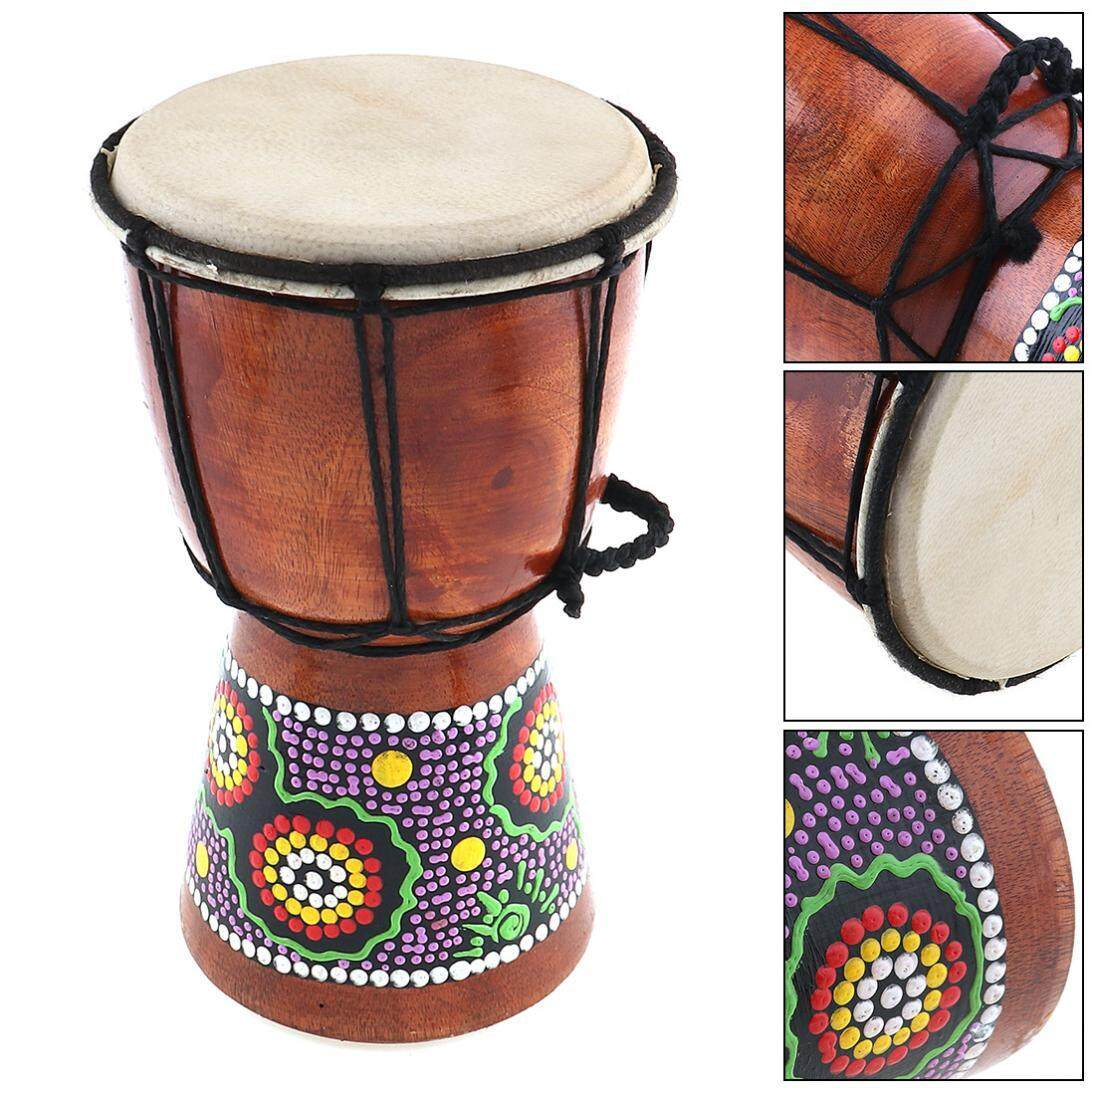 Drums Percussion Drum Sets Buy Piece Set Diagram Premier 9 Peice Kit 4 Inch Professional African Djembe Wood Goat Skin Good Sound Musical Instrument